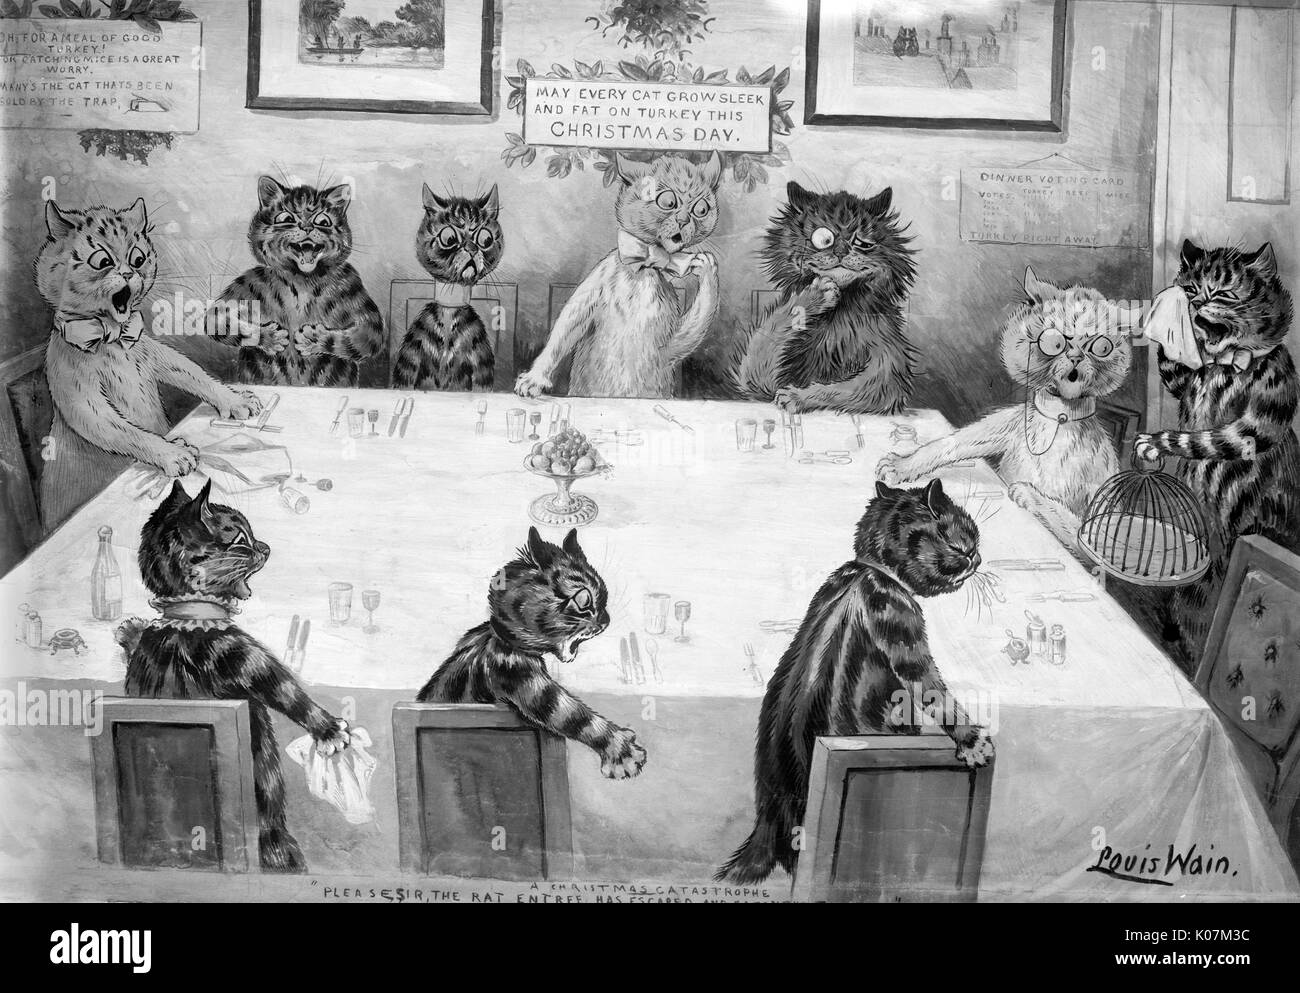 Louis Wain - A Christmas catastrophe : please, sir, the rat entree has escaped and eaten the turkey, cats eating - Stock Image